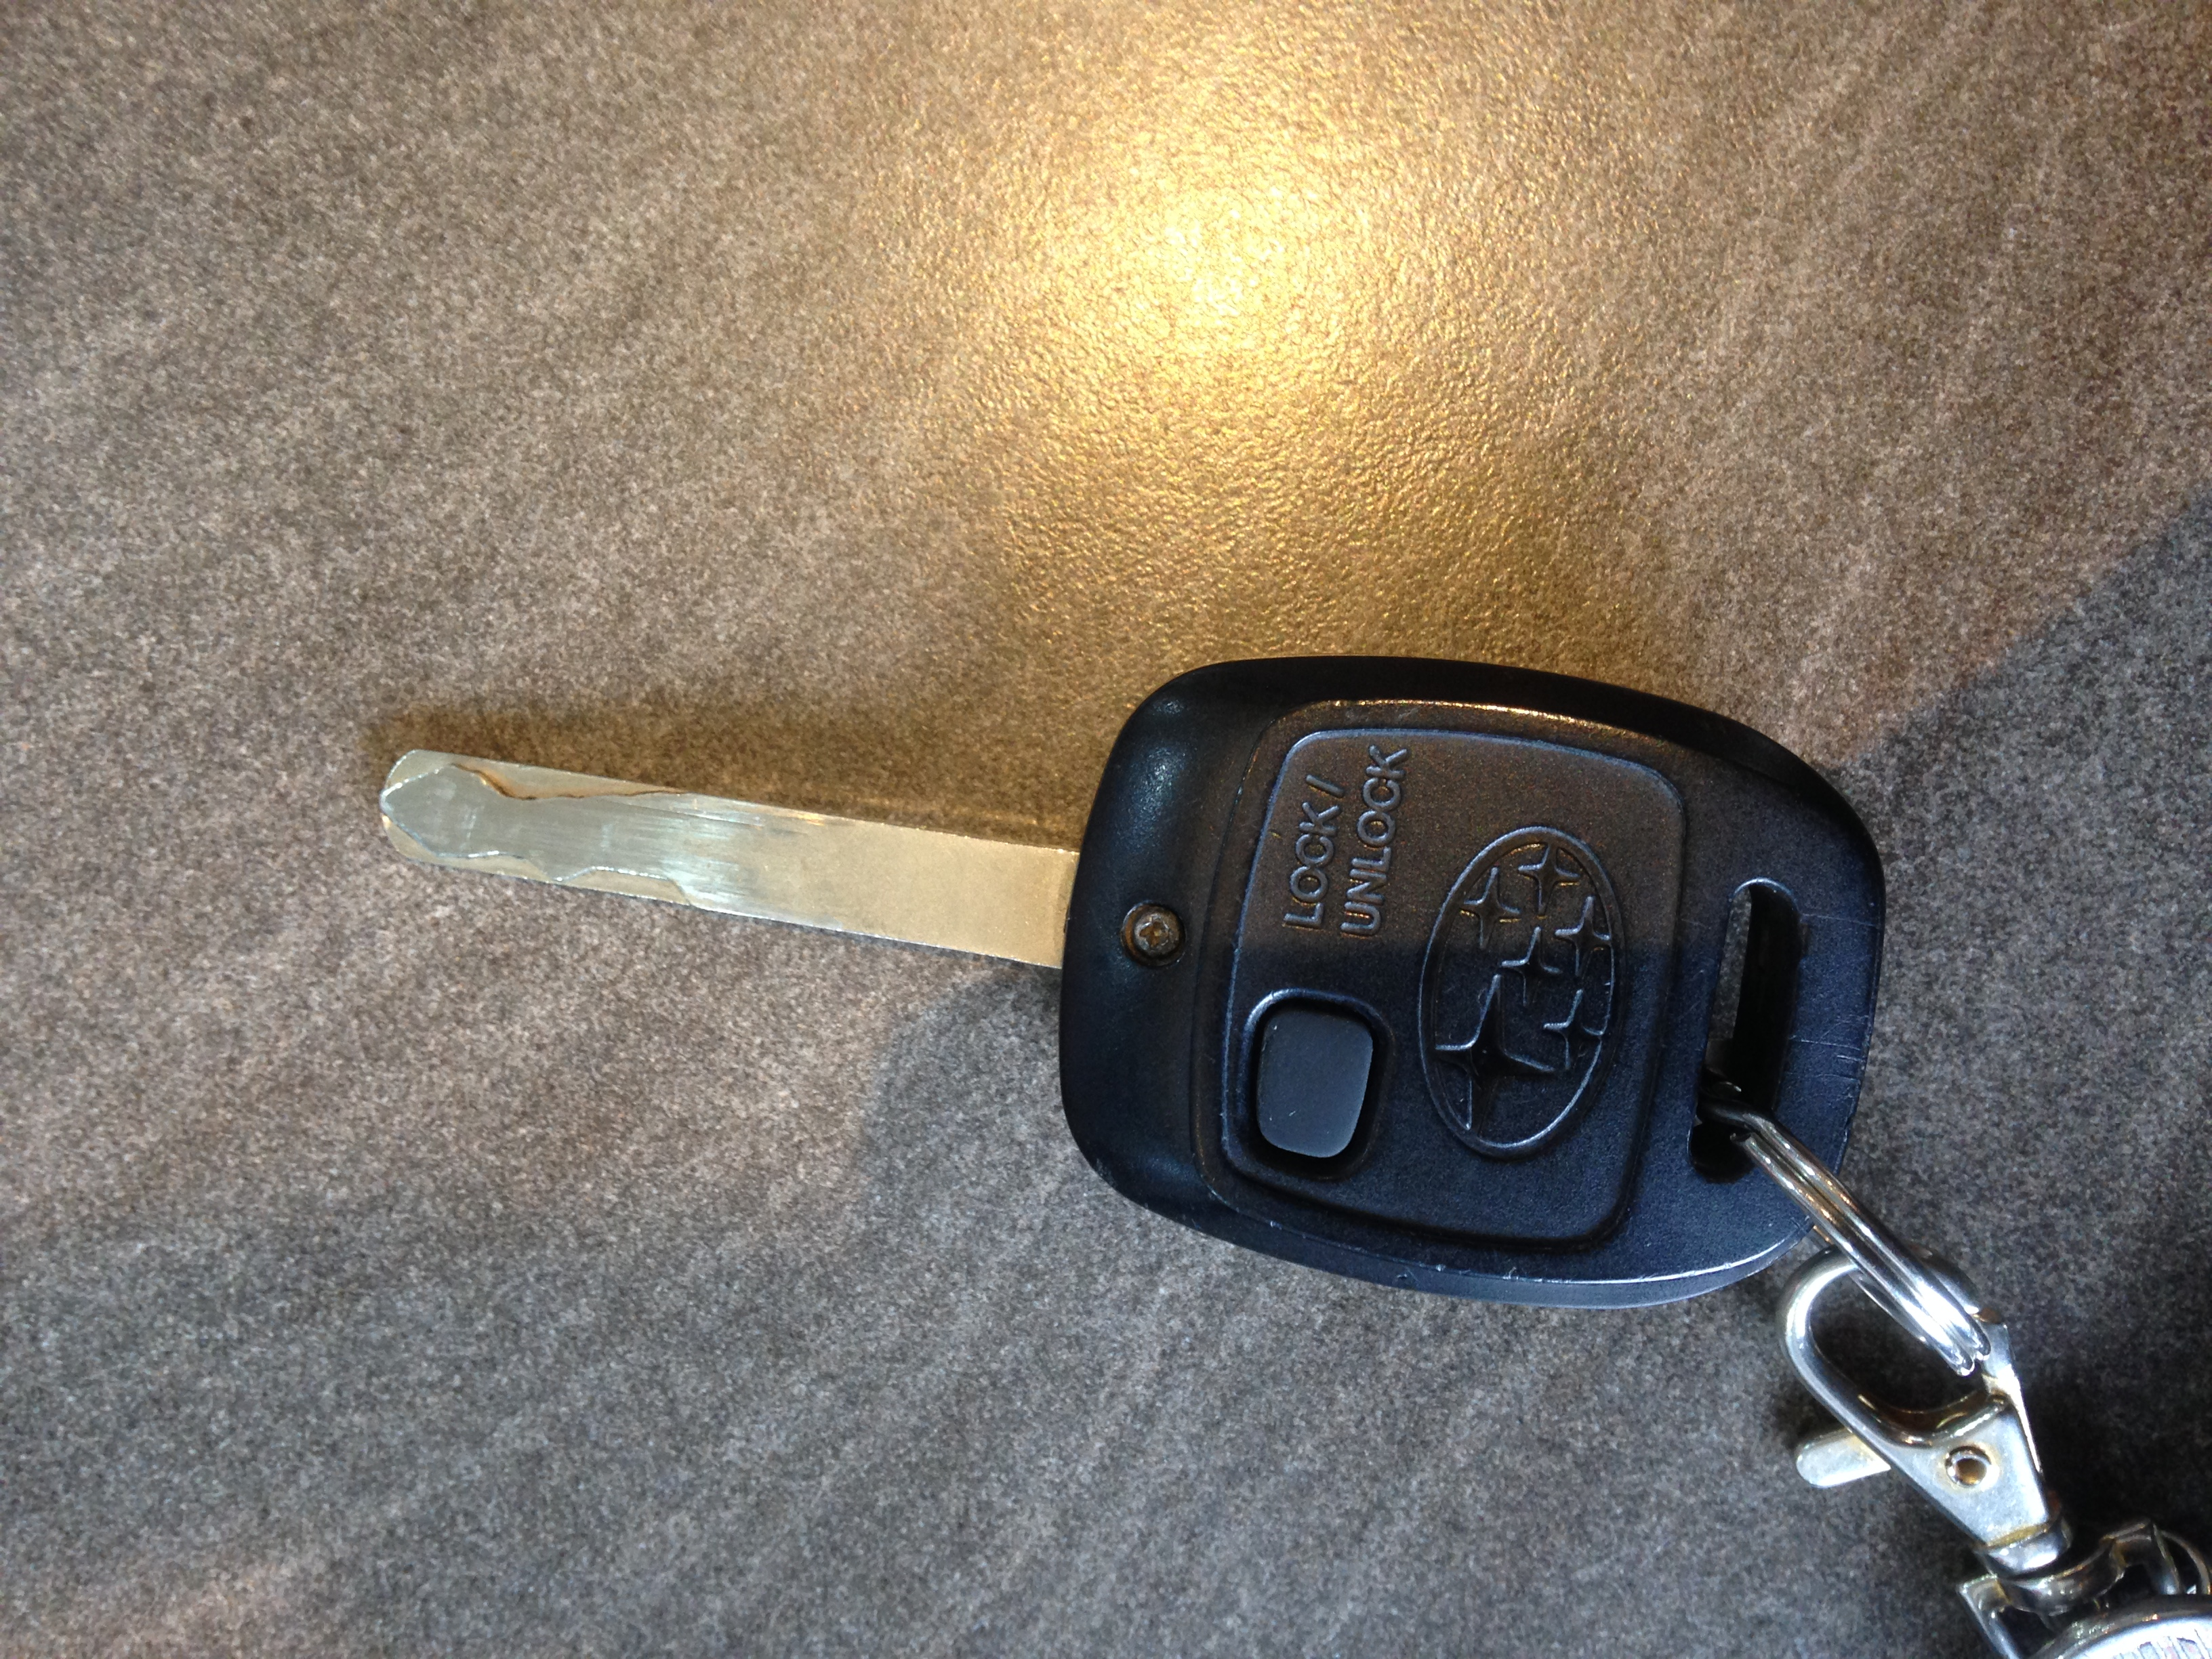 2007 Outback key button does not work. - Subaru Legacy ...